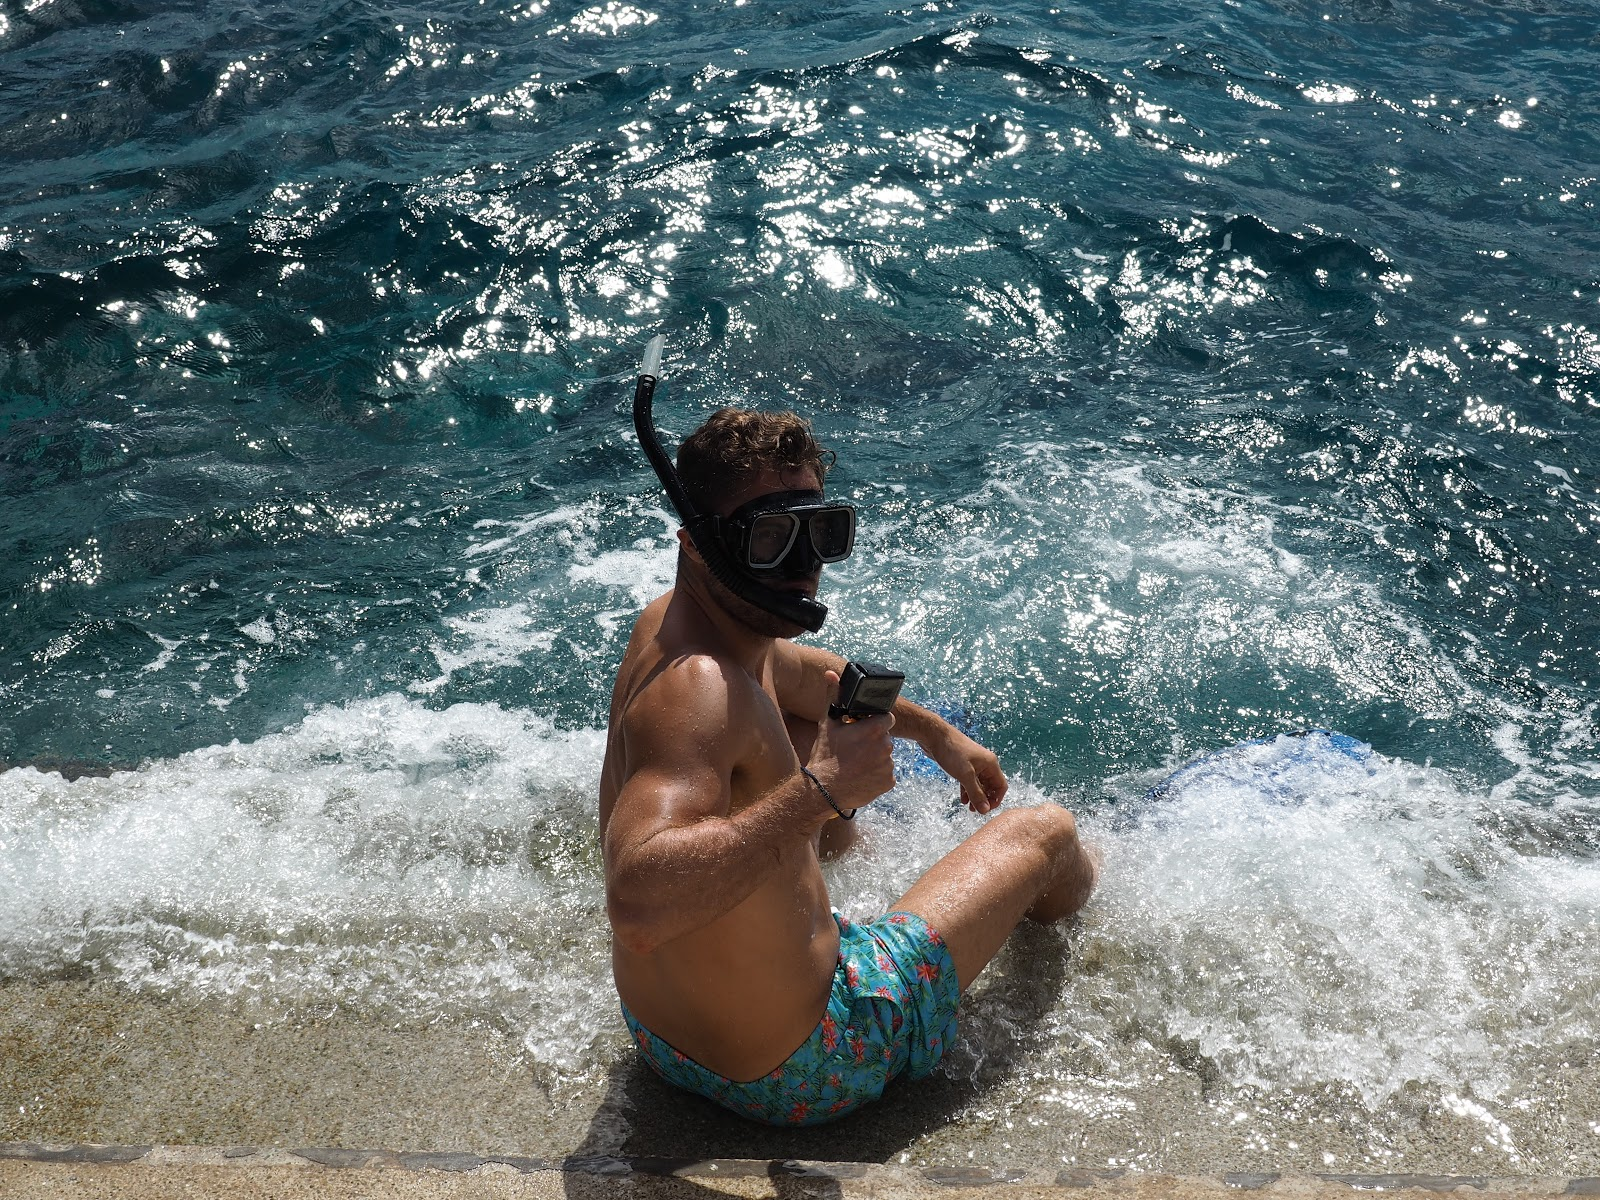 man in sea holding a Go Pro, wearing board shorts and a snorkel